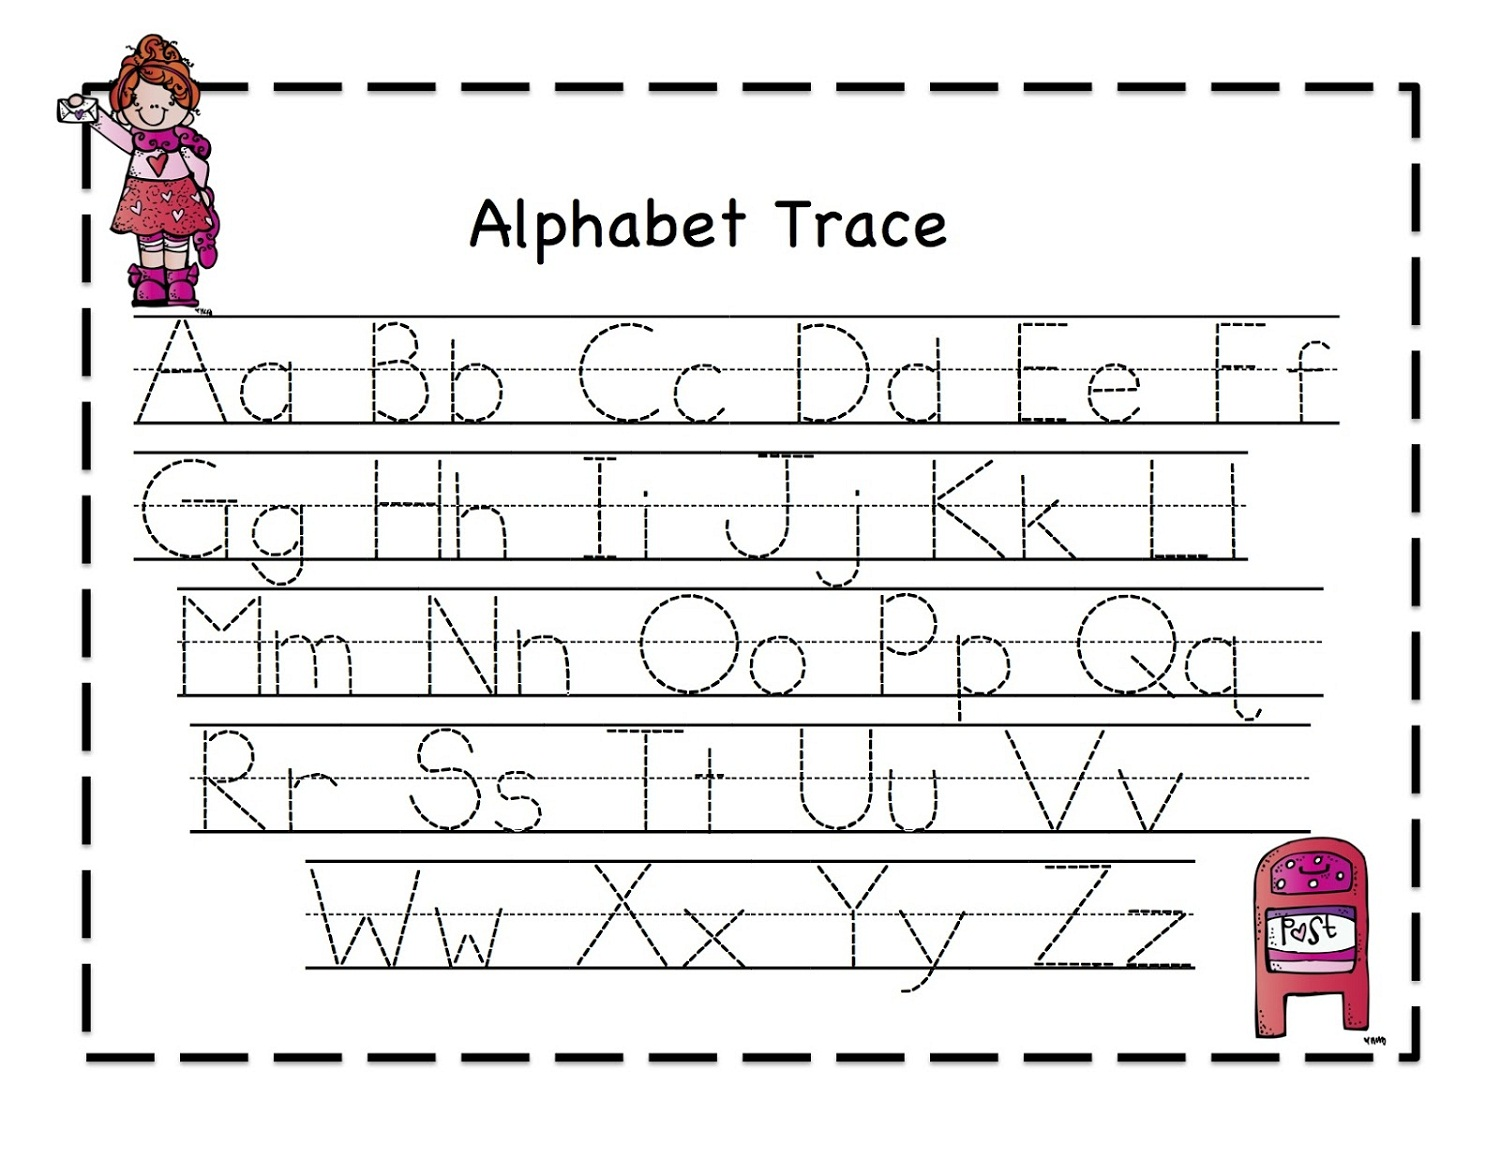 Worksheet Letter Tracing For Toddlers printable tracing letters for toddlers cover sample of the alphabet a z to print letters